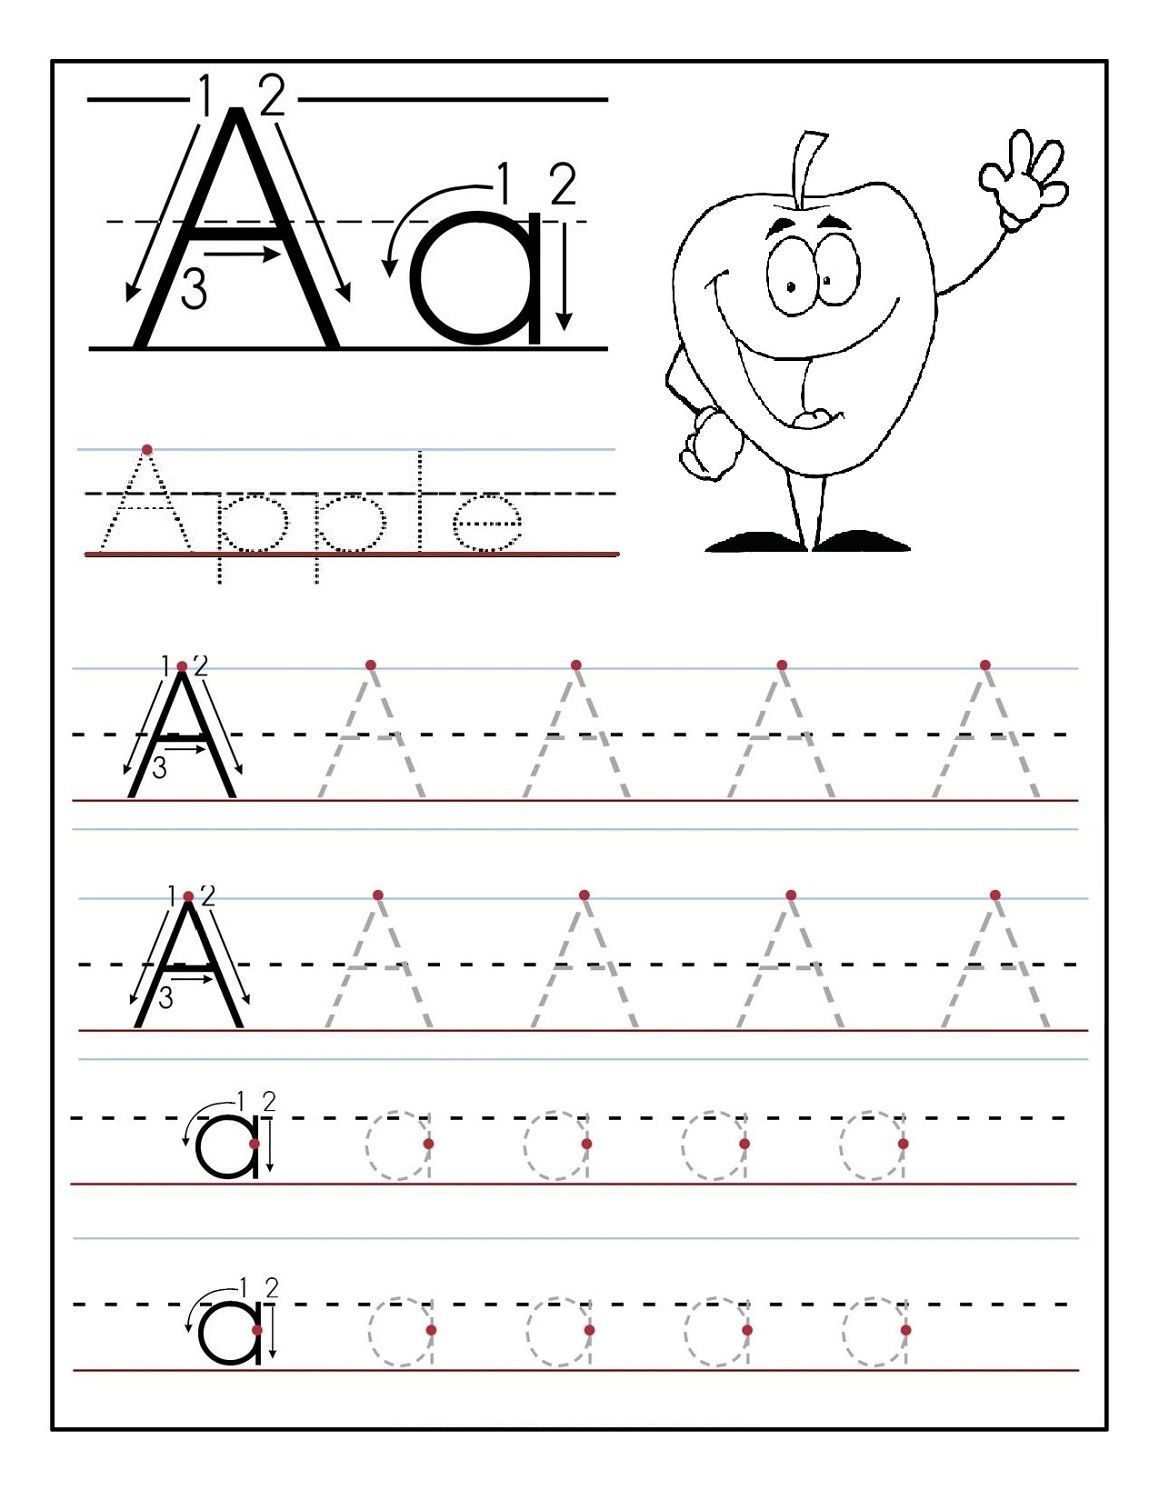 Trace Letter A Sheets To Print | Printable Preschool with regard to Tracing The Letter I Worksheets For Preschool